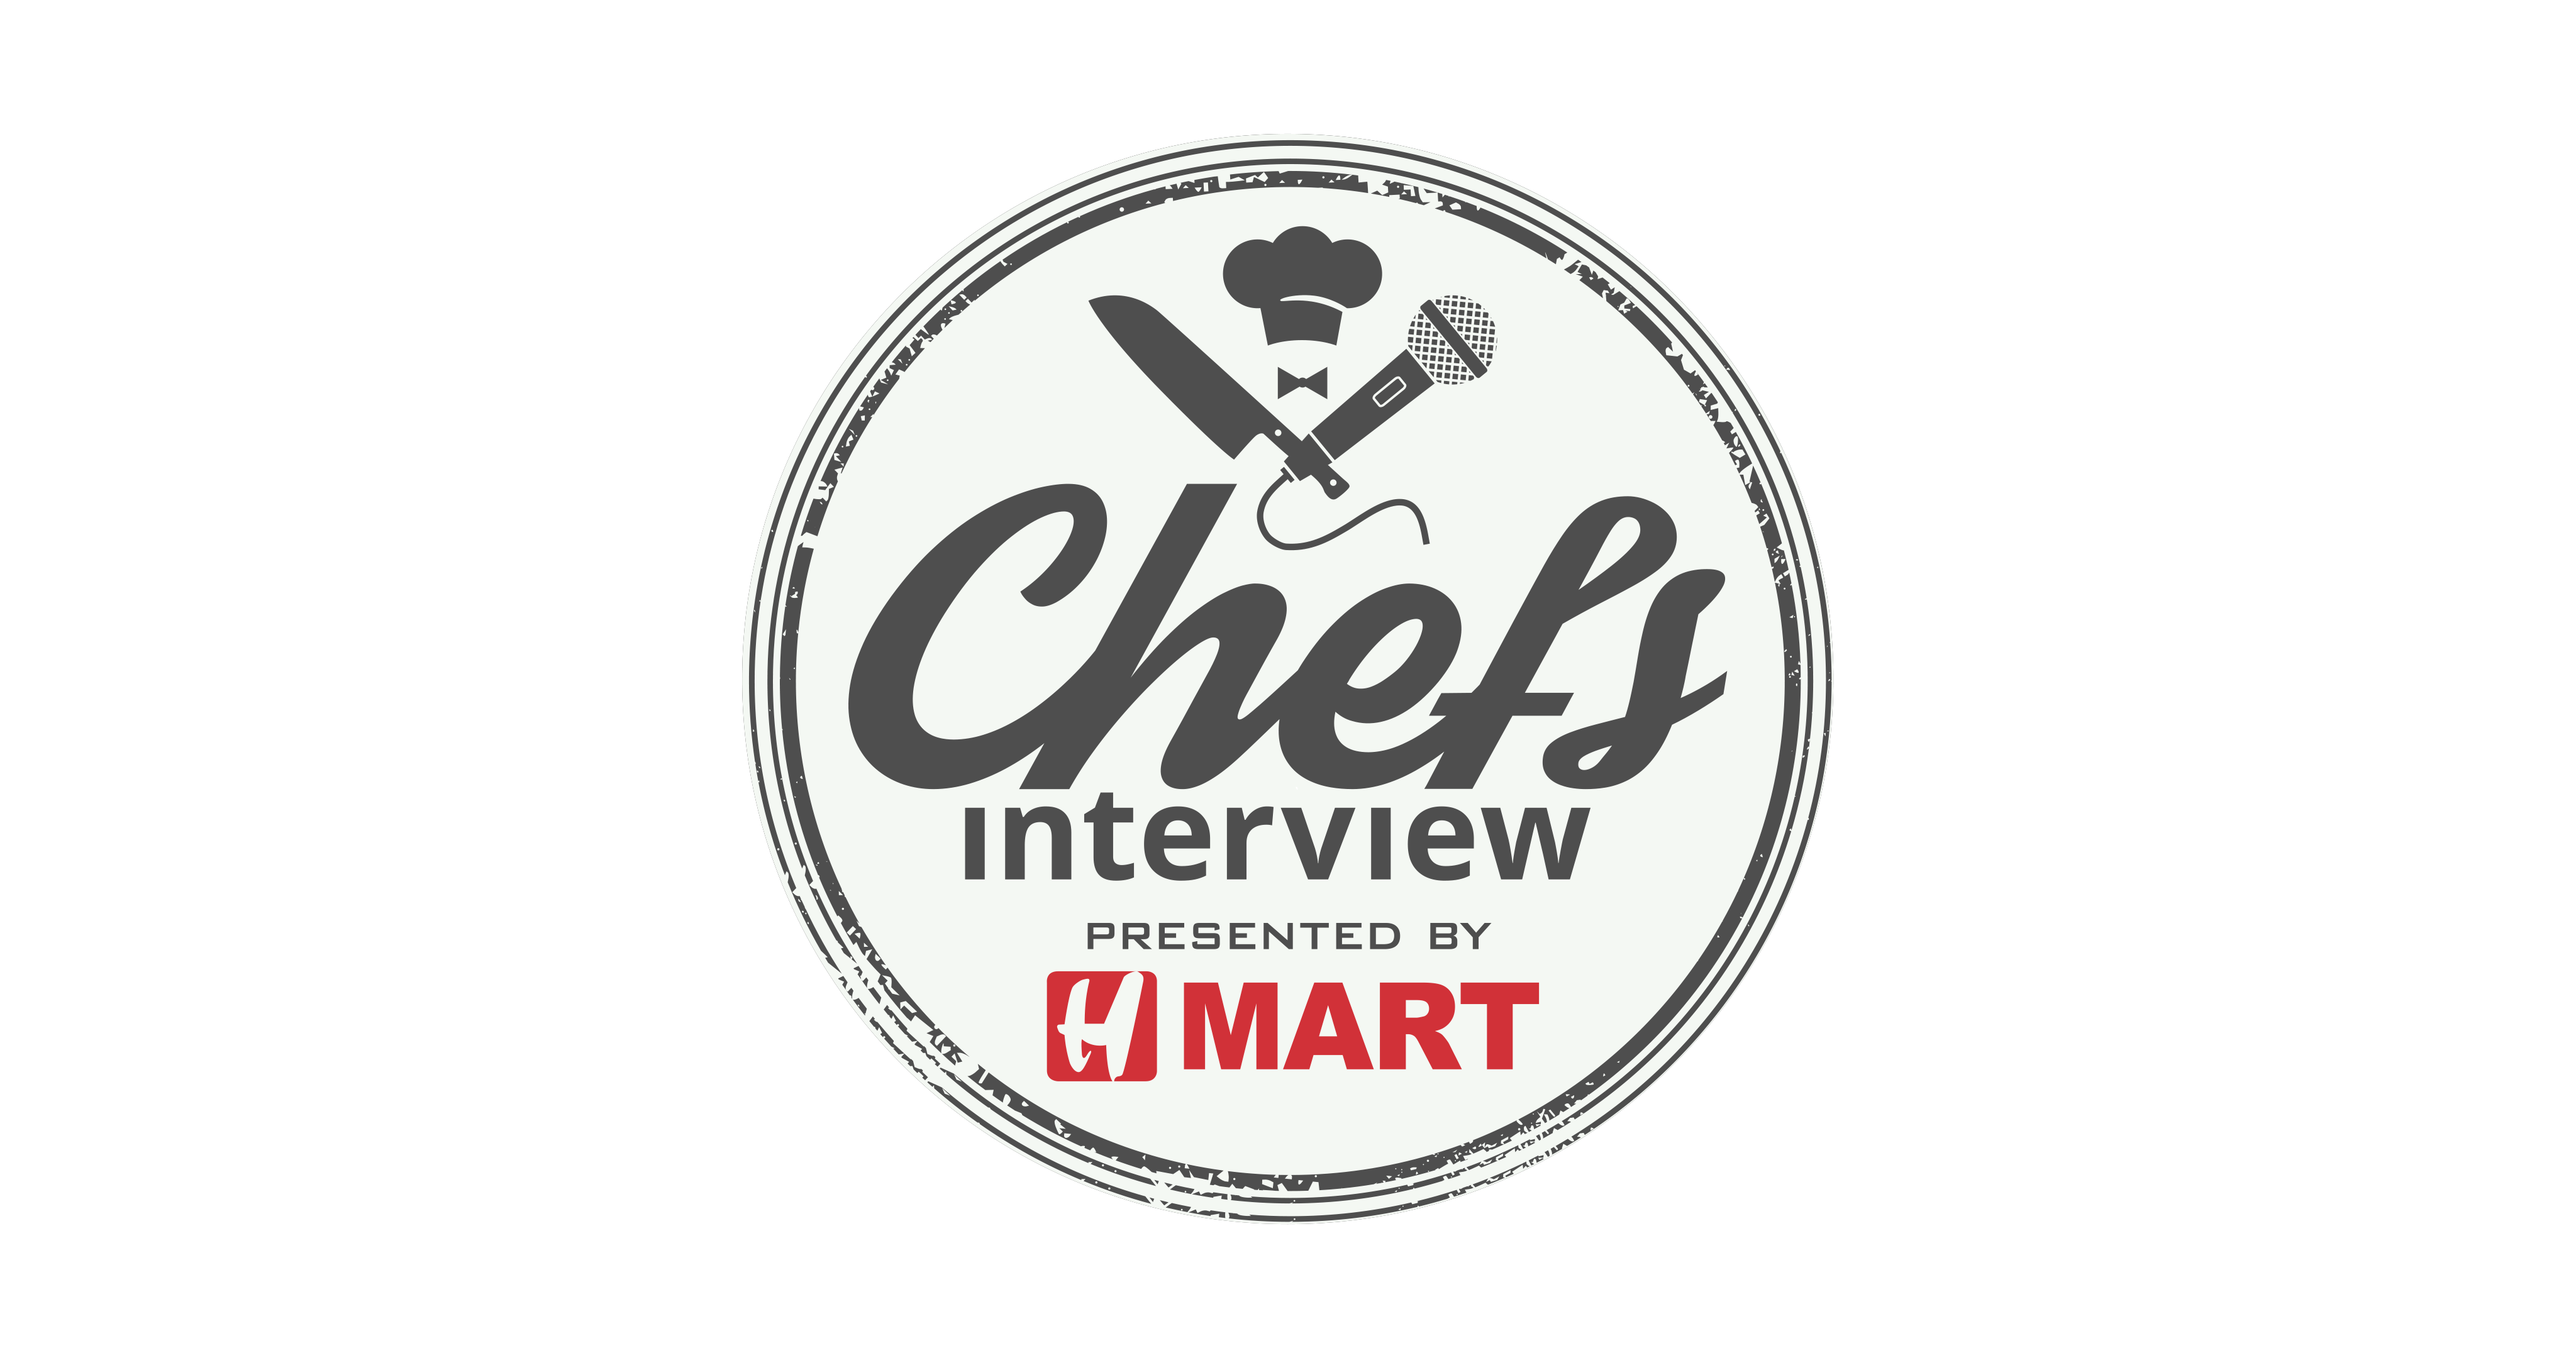 Chef's Interview